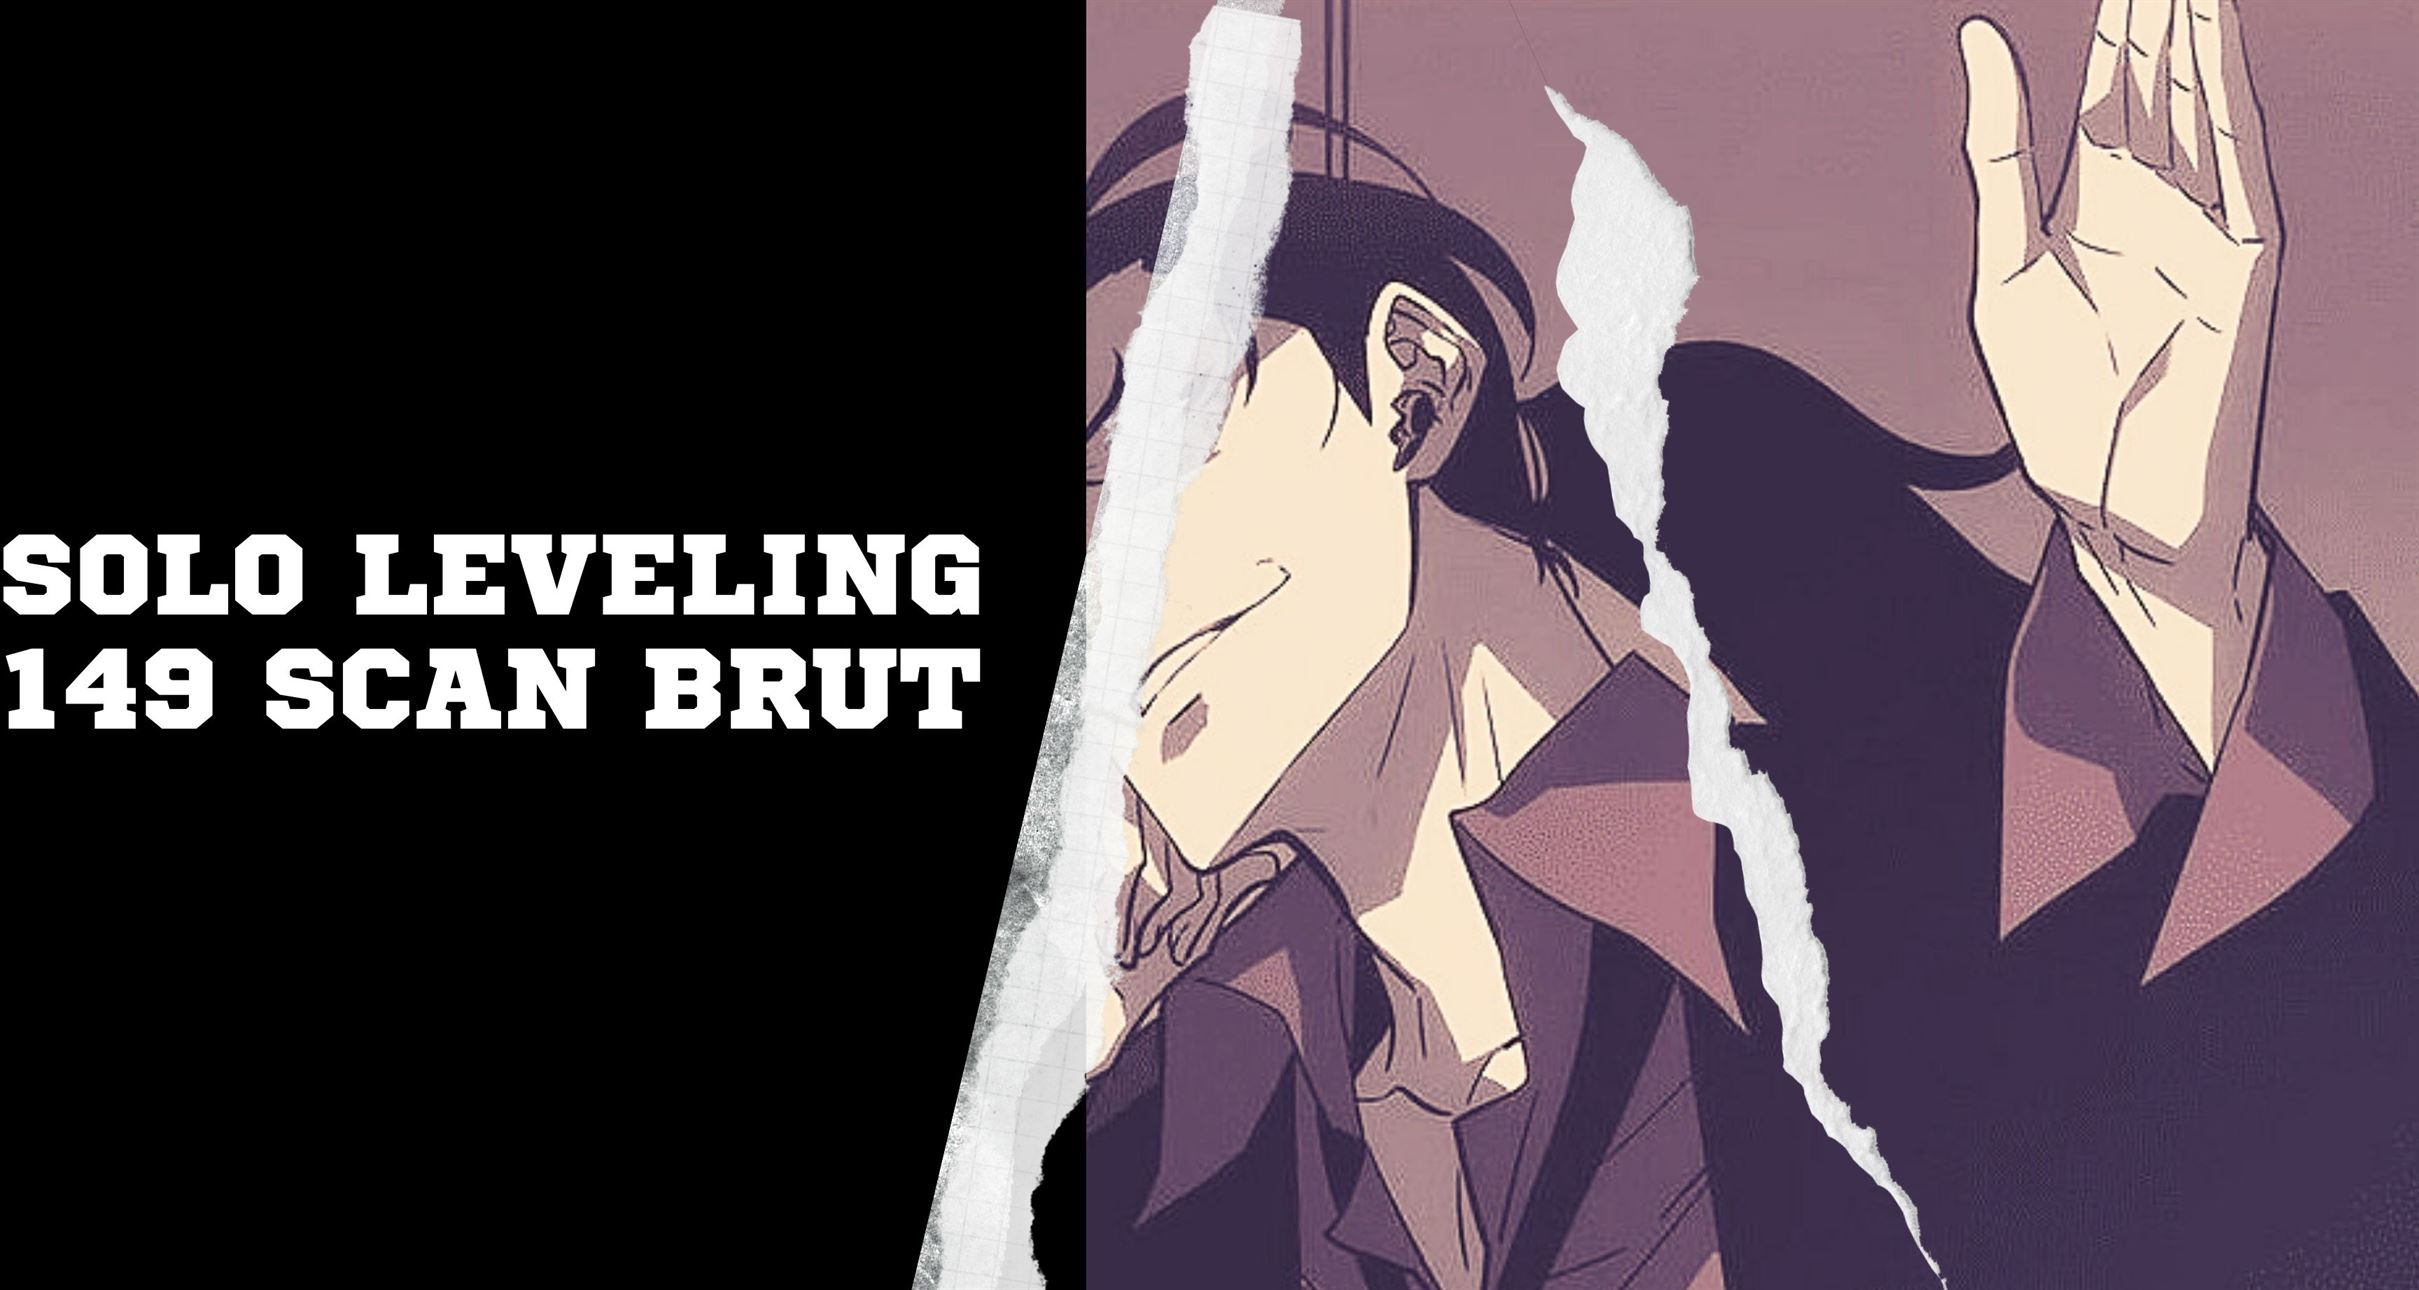 Solo Leveling 149 Scan Brut